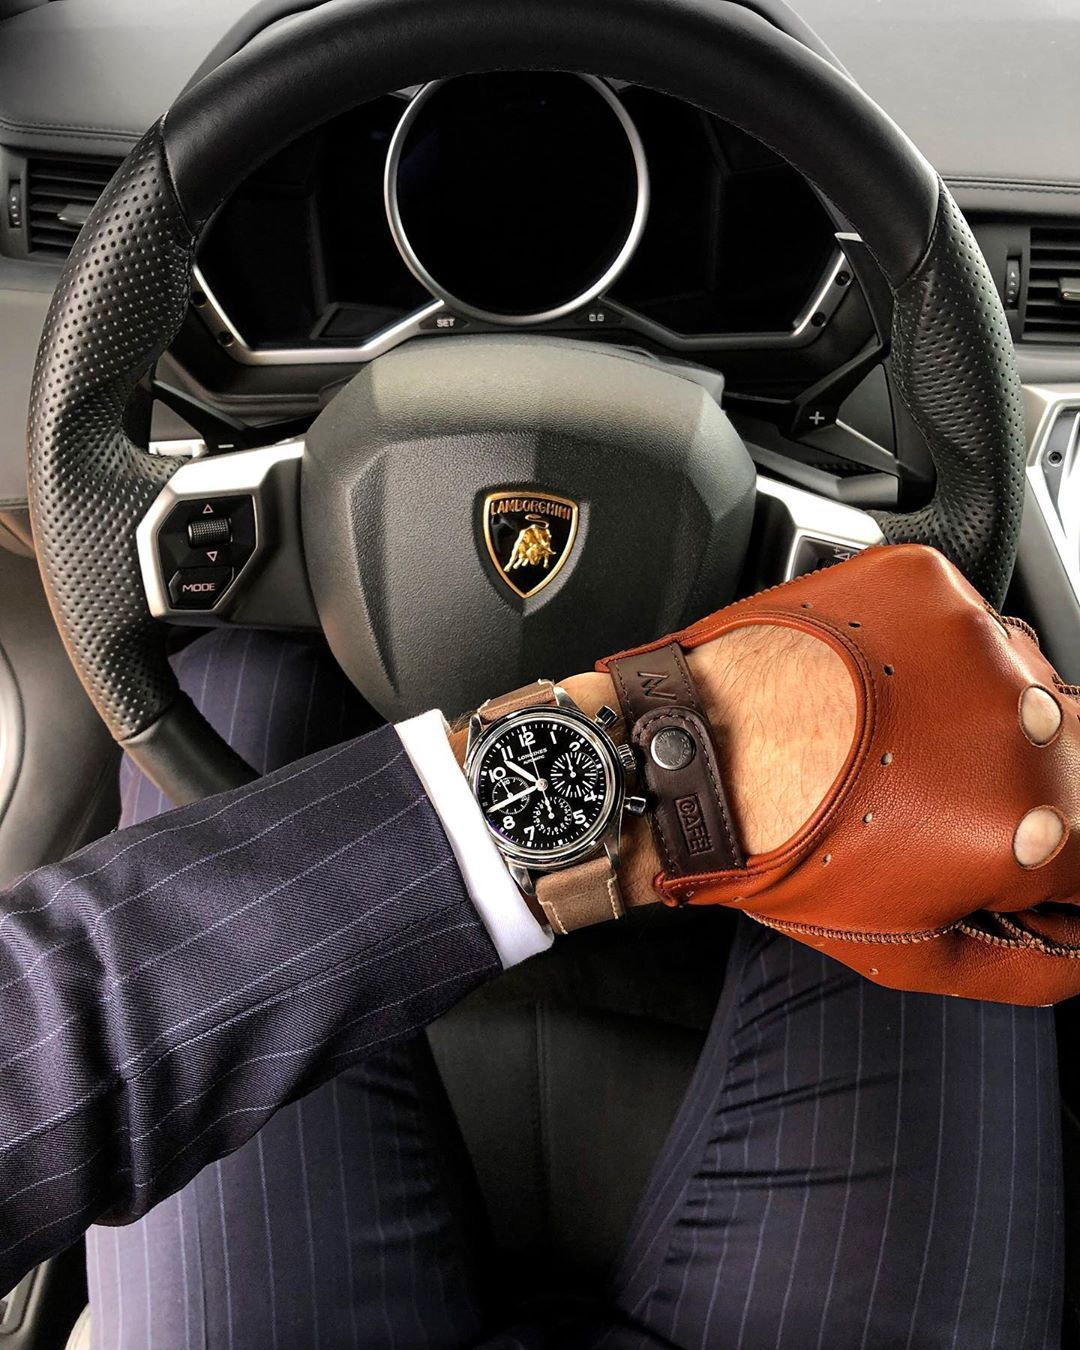 Leather Driving Gloves In A Lamborghini In 2020 Leather Driving Gloves Driving Gloves Men Driving Gloves